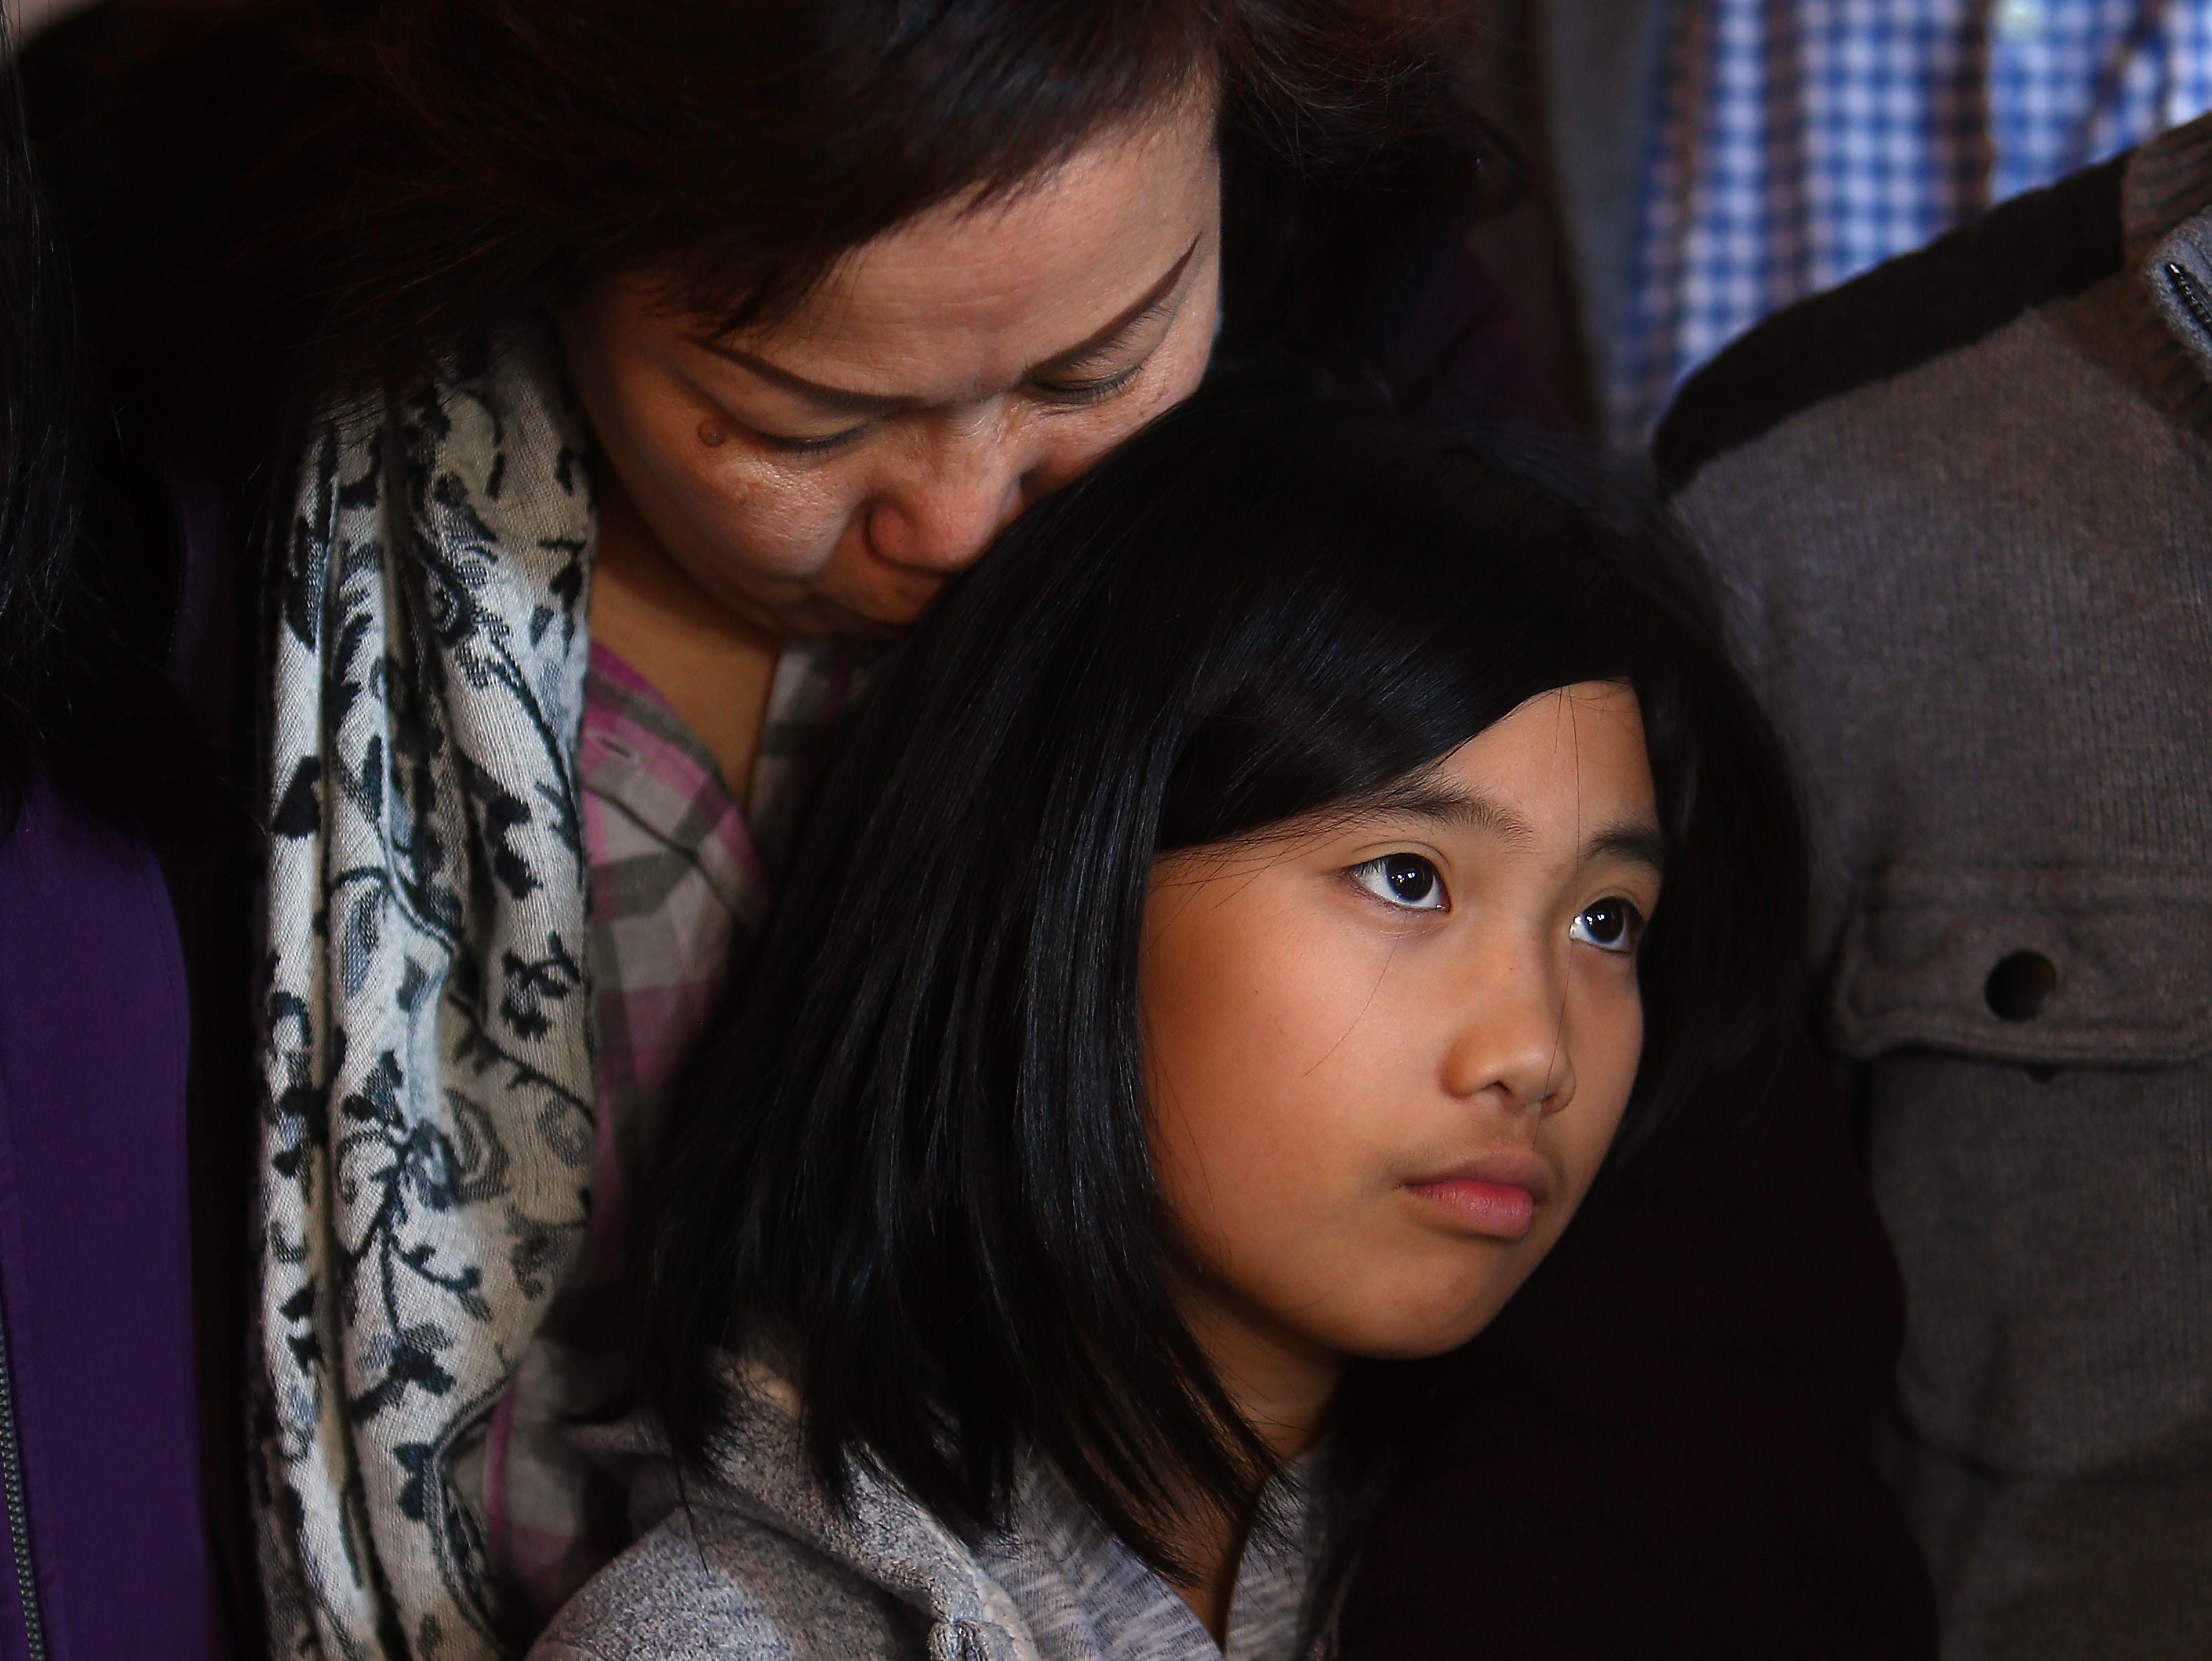 Mariana Sunarto, wife of Harry Pangemanan hugs their 11-year-old daughter during a news conference at CaiÕs Cafe in Metuchen NJ, celebrating a federal district court judge granting a temporary restraining order halting deportations of Indonesian Christian residents of Central Jersey in response to a federal class action lawsuit. February 3, 2018. Metuchen, NJ.